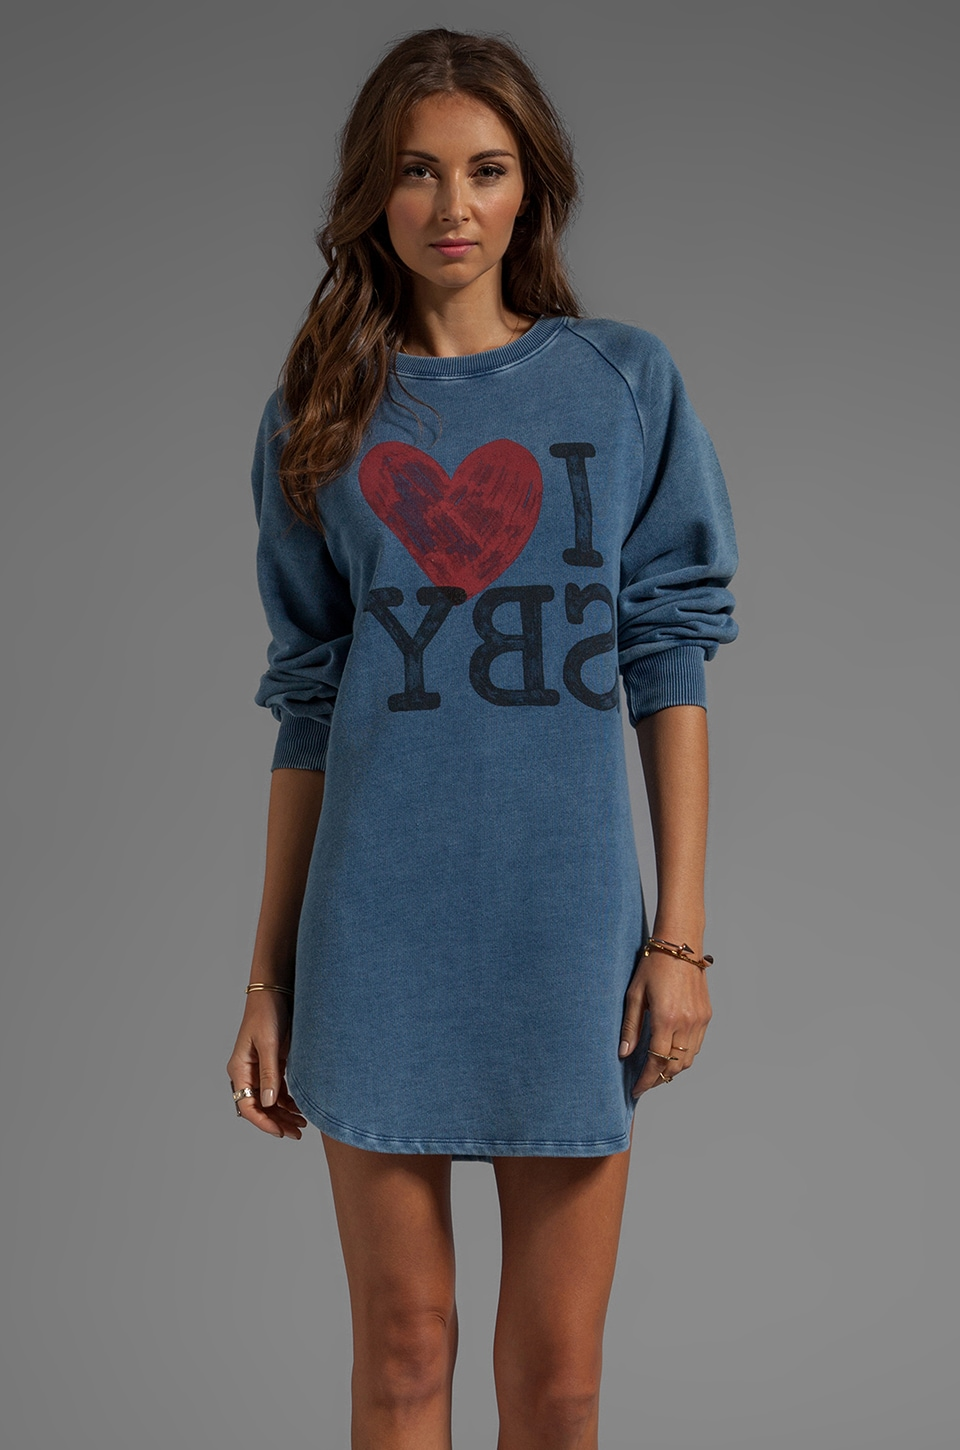 SONIA by Sonia Rykiel Sweatshirt Dress in Bleu Chambray